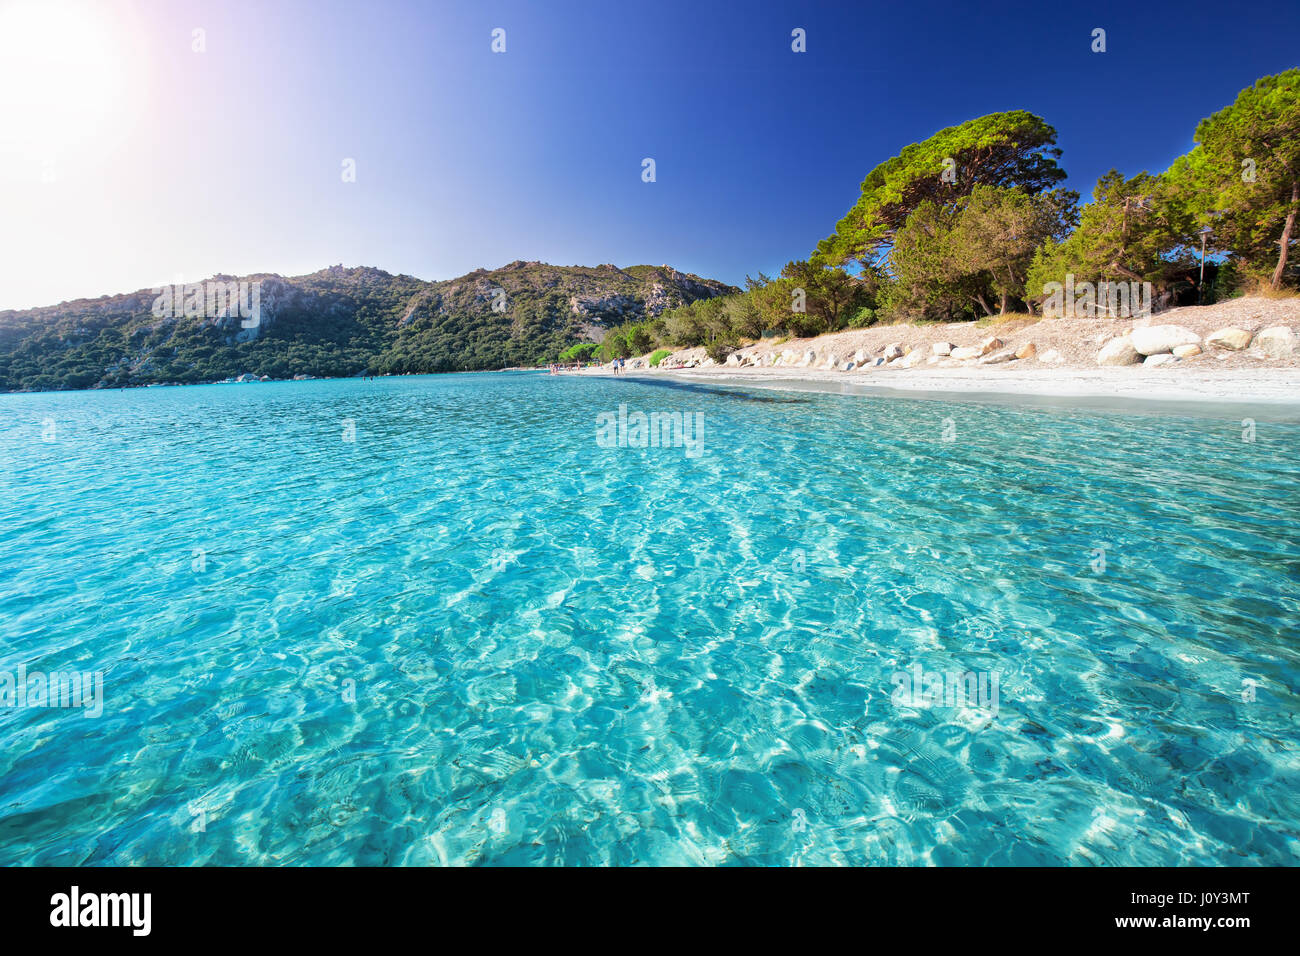 Santa Giulia sandy beach with pine trees and azure clear water, Corsica, France, Europe - Stock Image